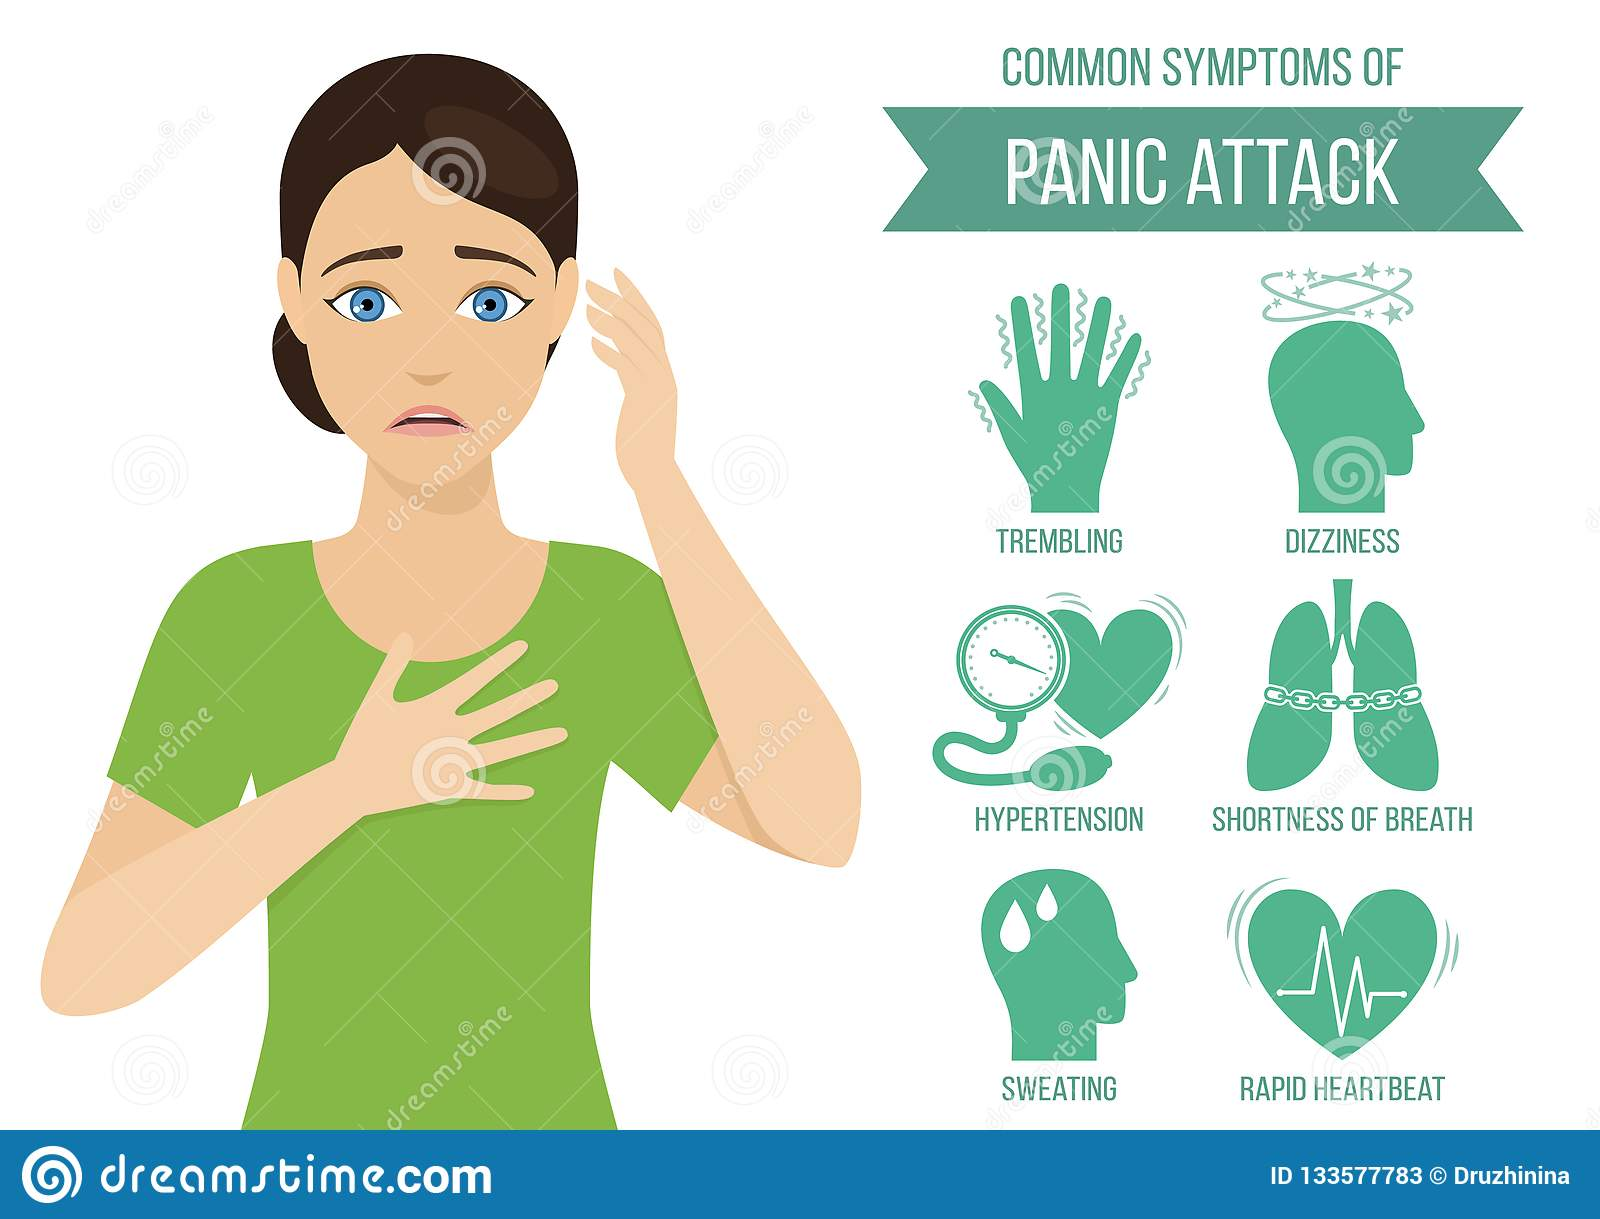 Symptoms of panic attack stock vector. Illustration of